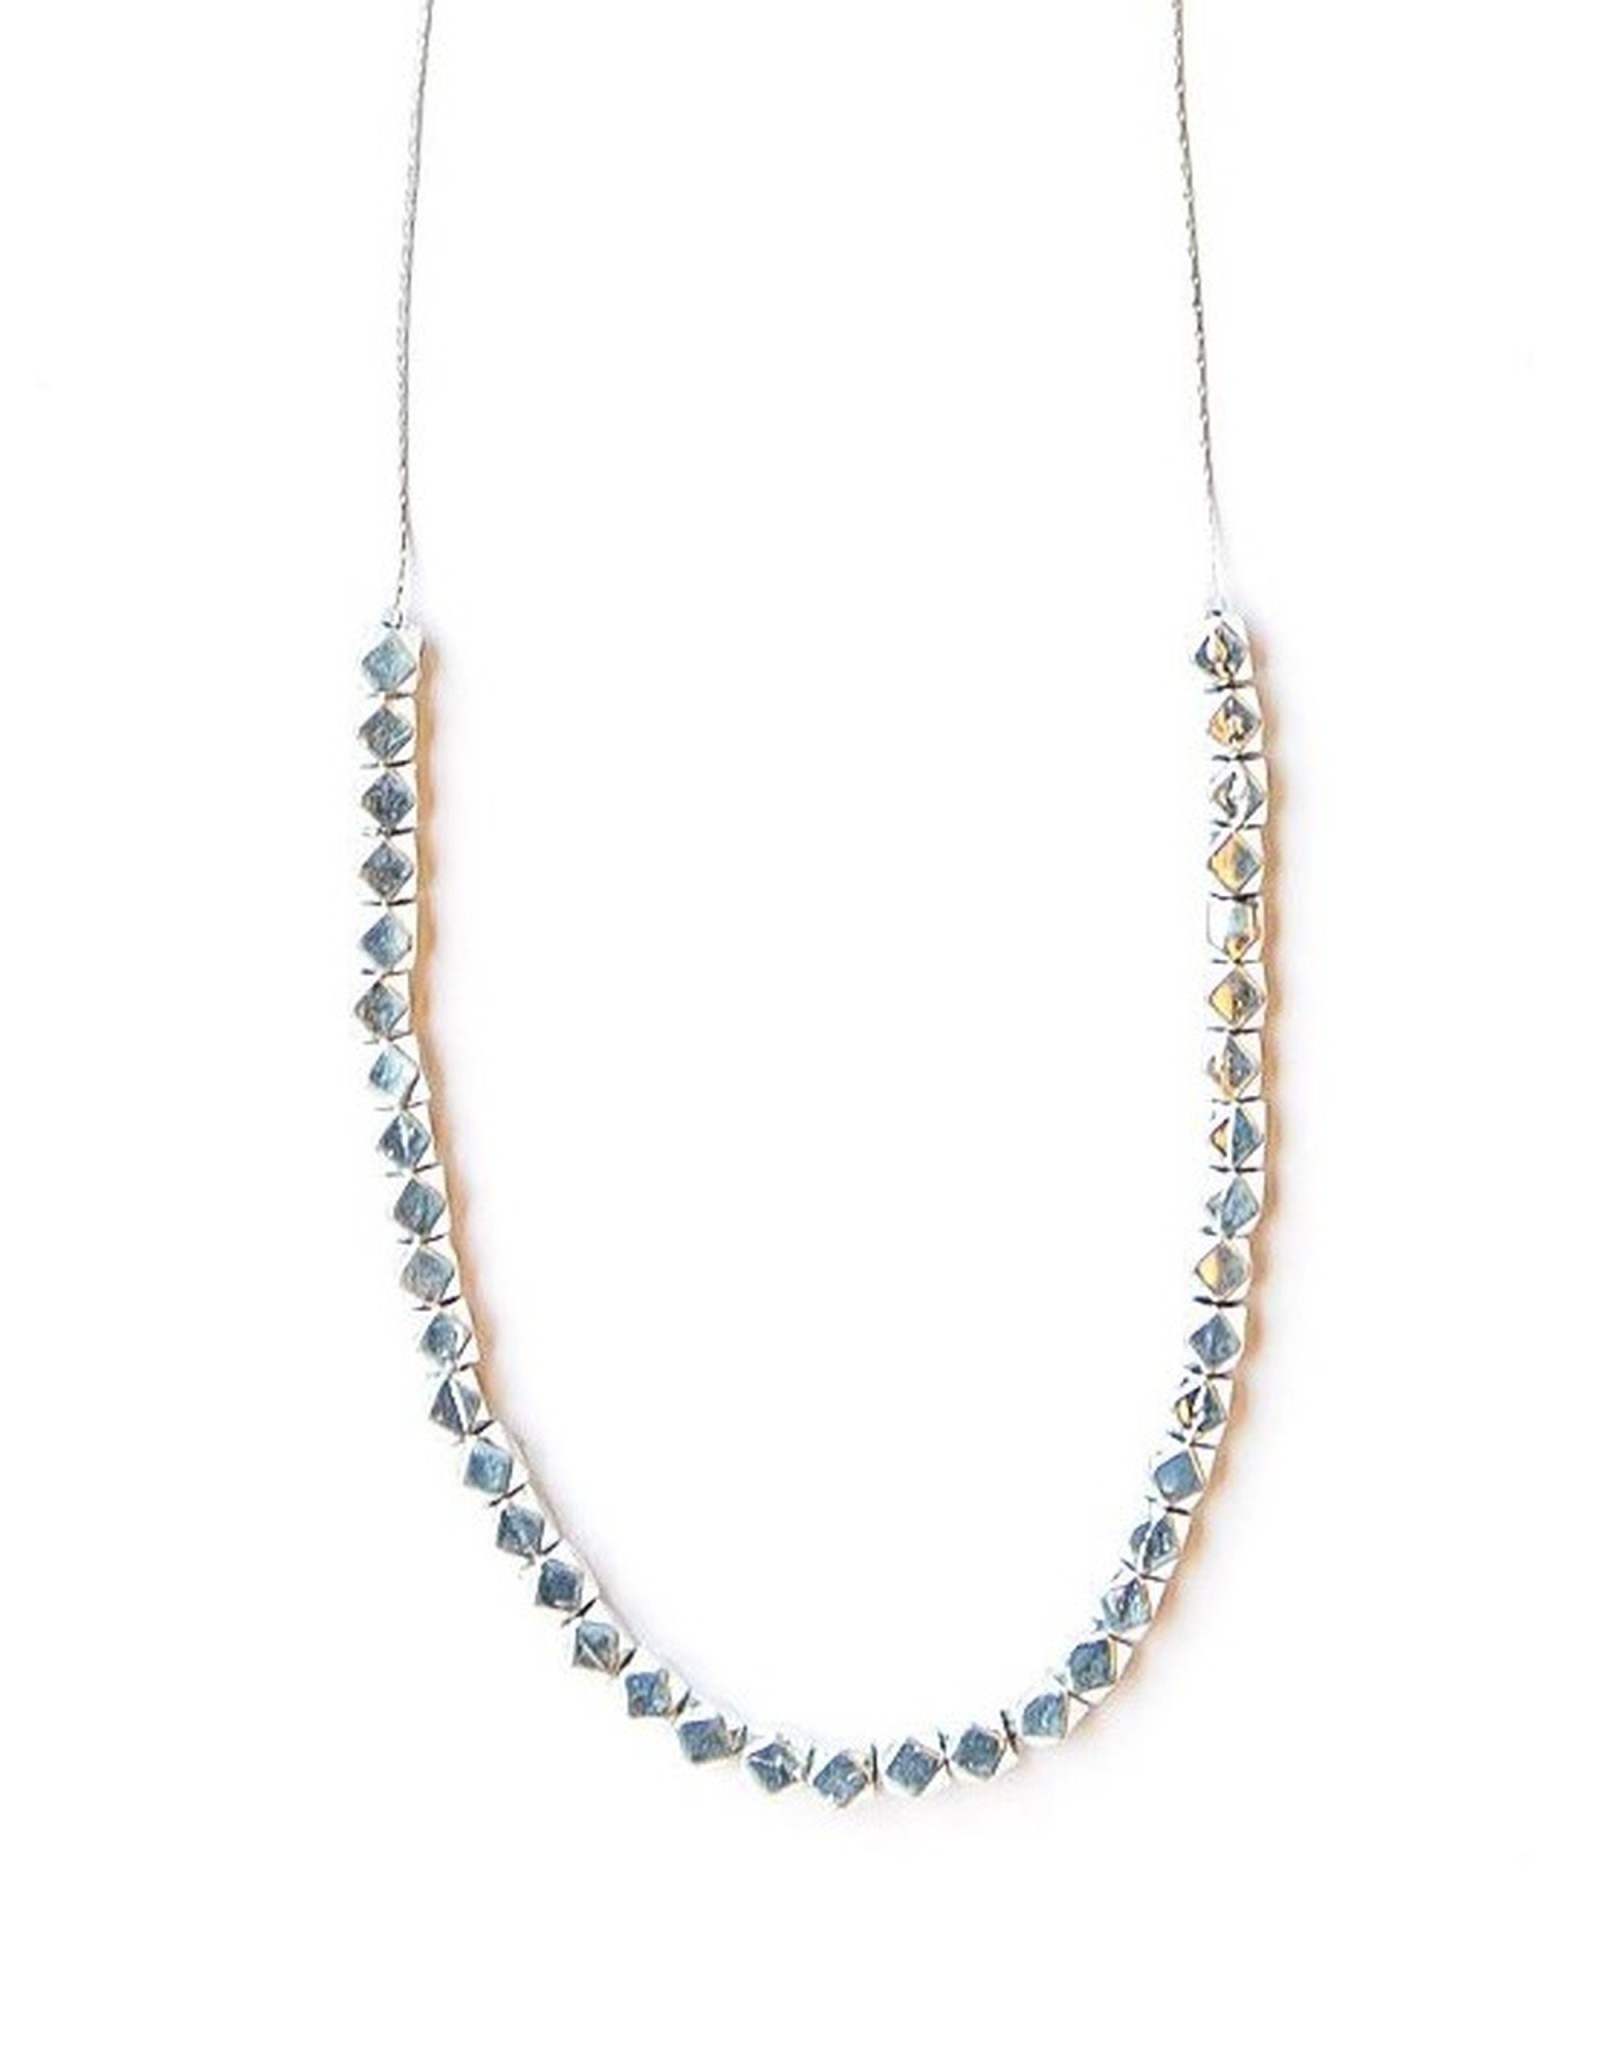 Silver Glow Necklace, India